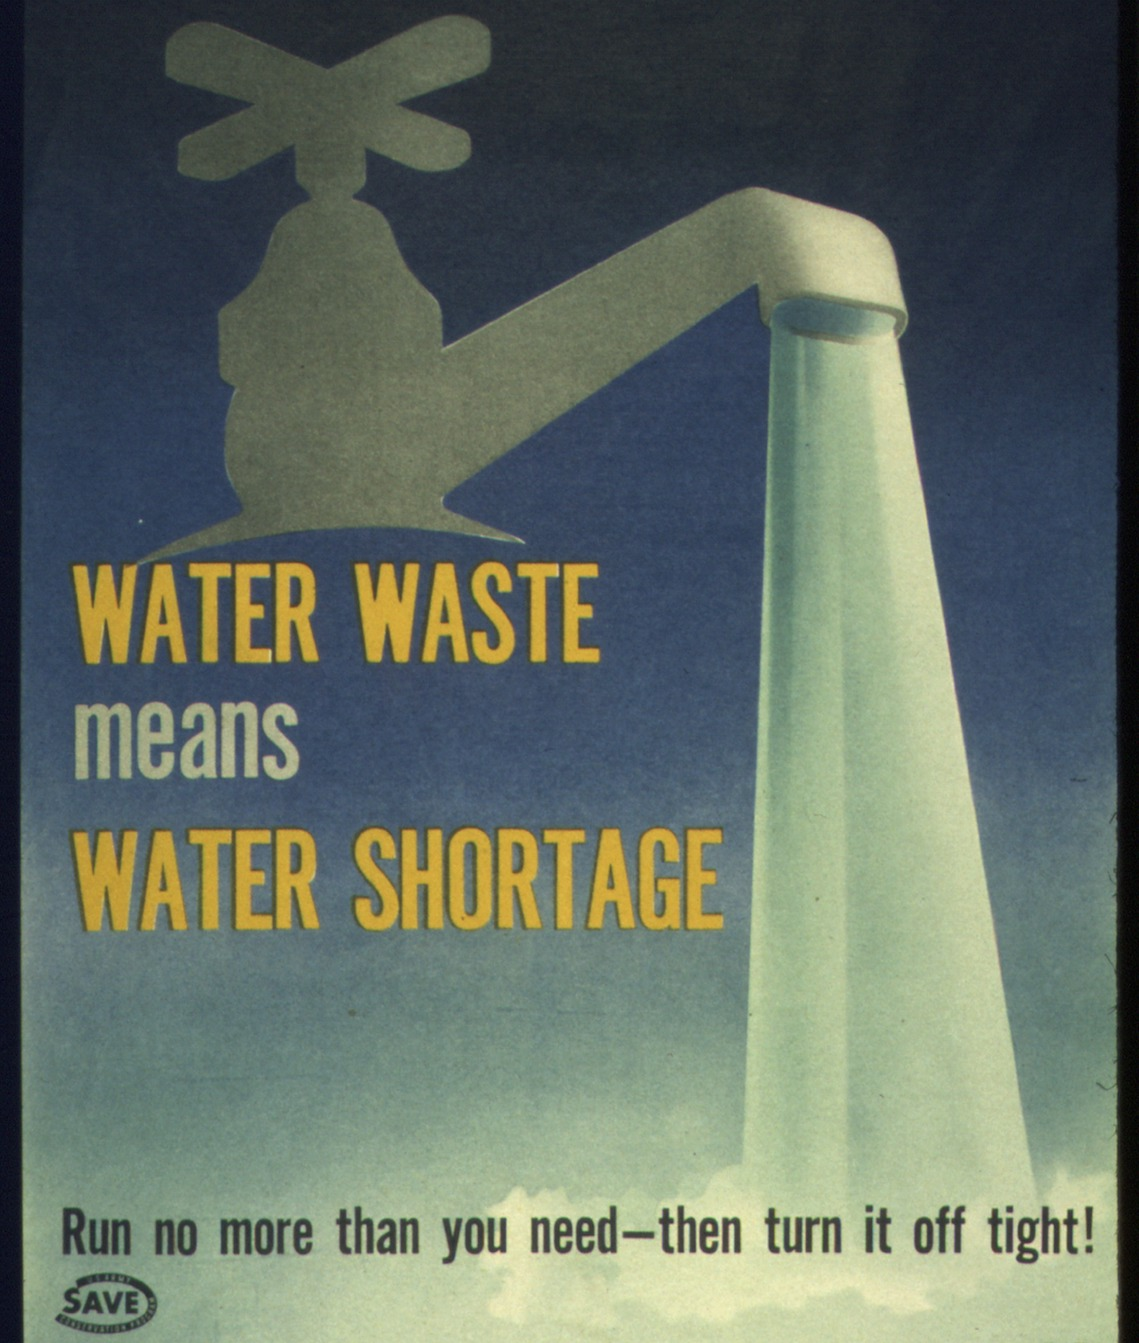 Water waste means water shortage